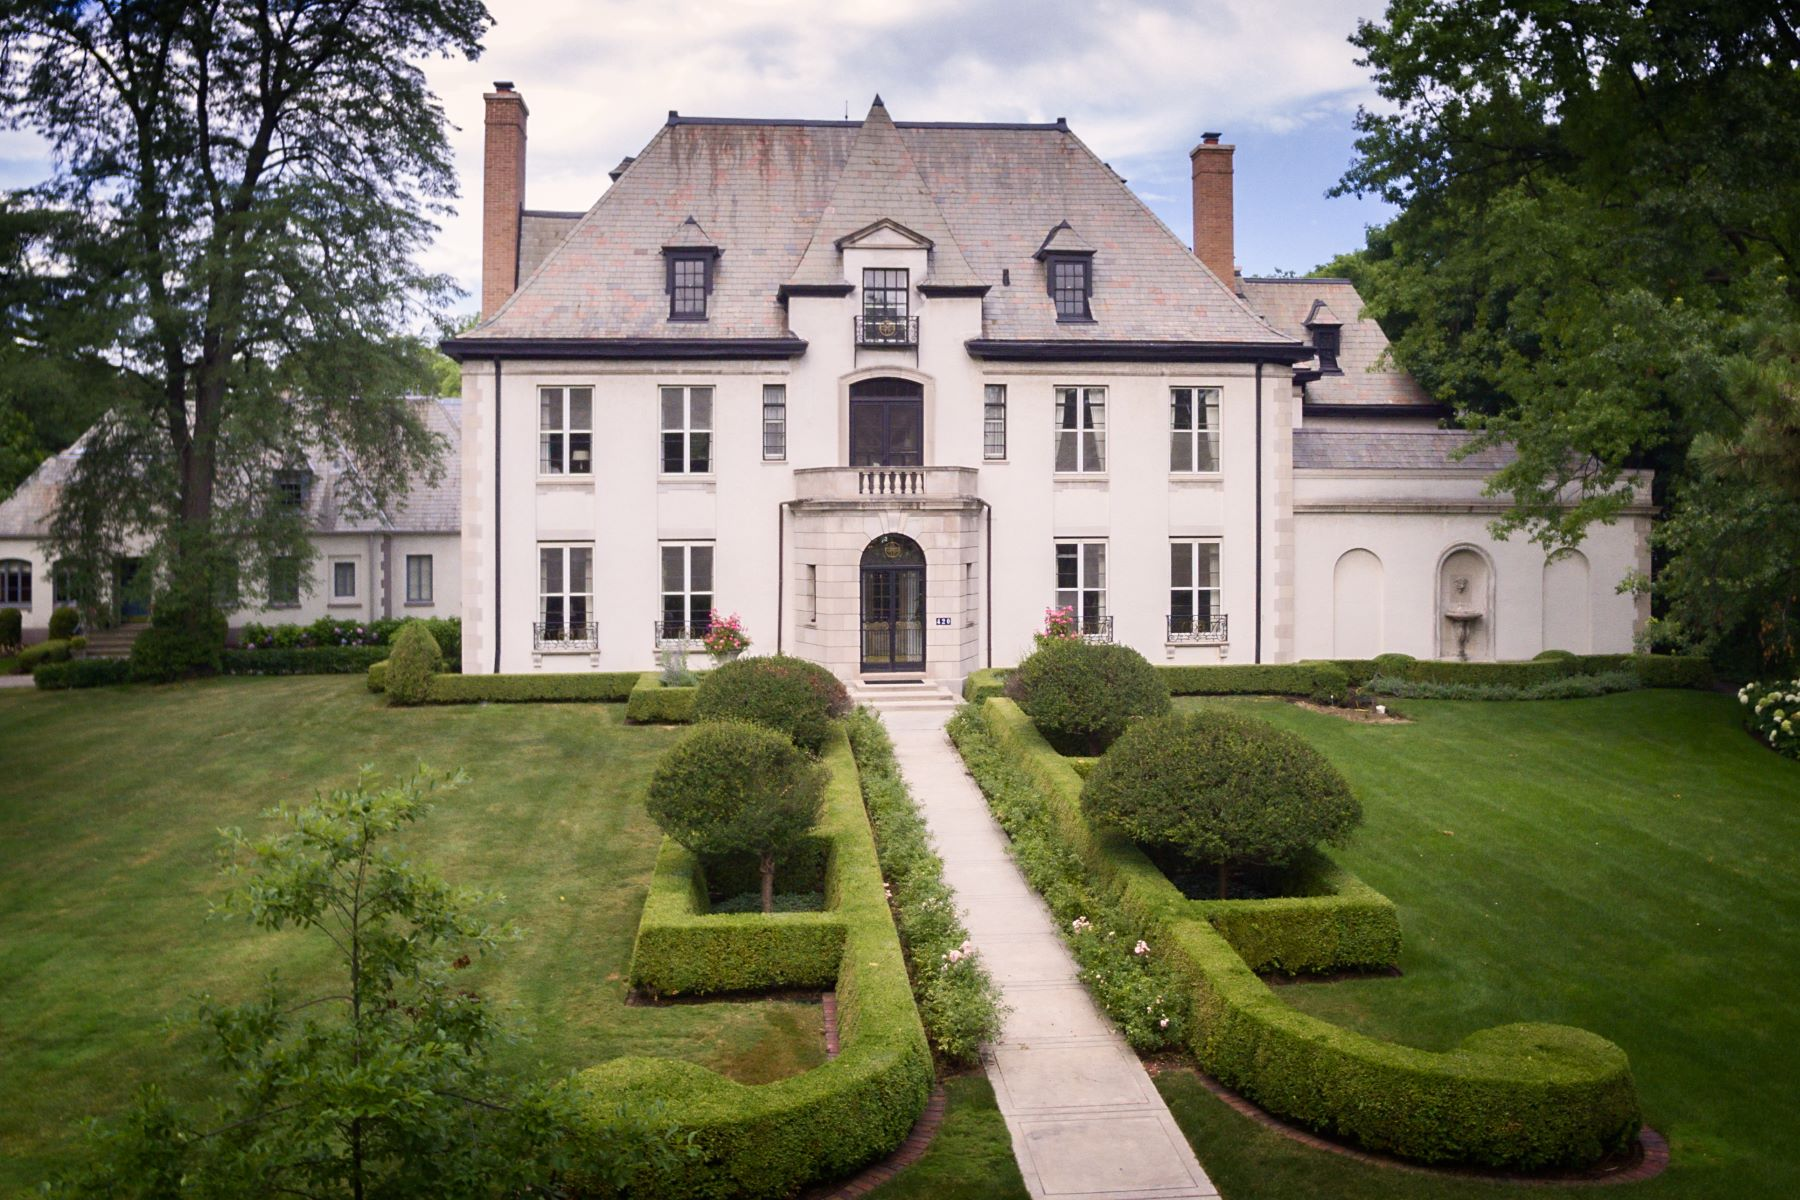 Single Family Home for Sale at Think Parisian chic 420 S Park Avenue Hinsdale, Illinois 60521 United States